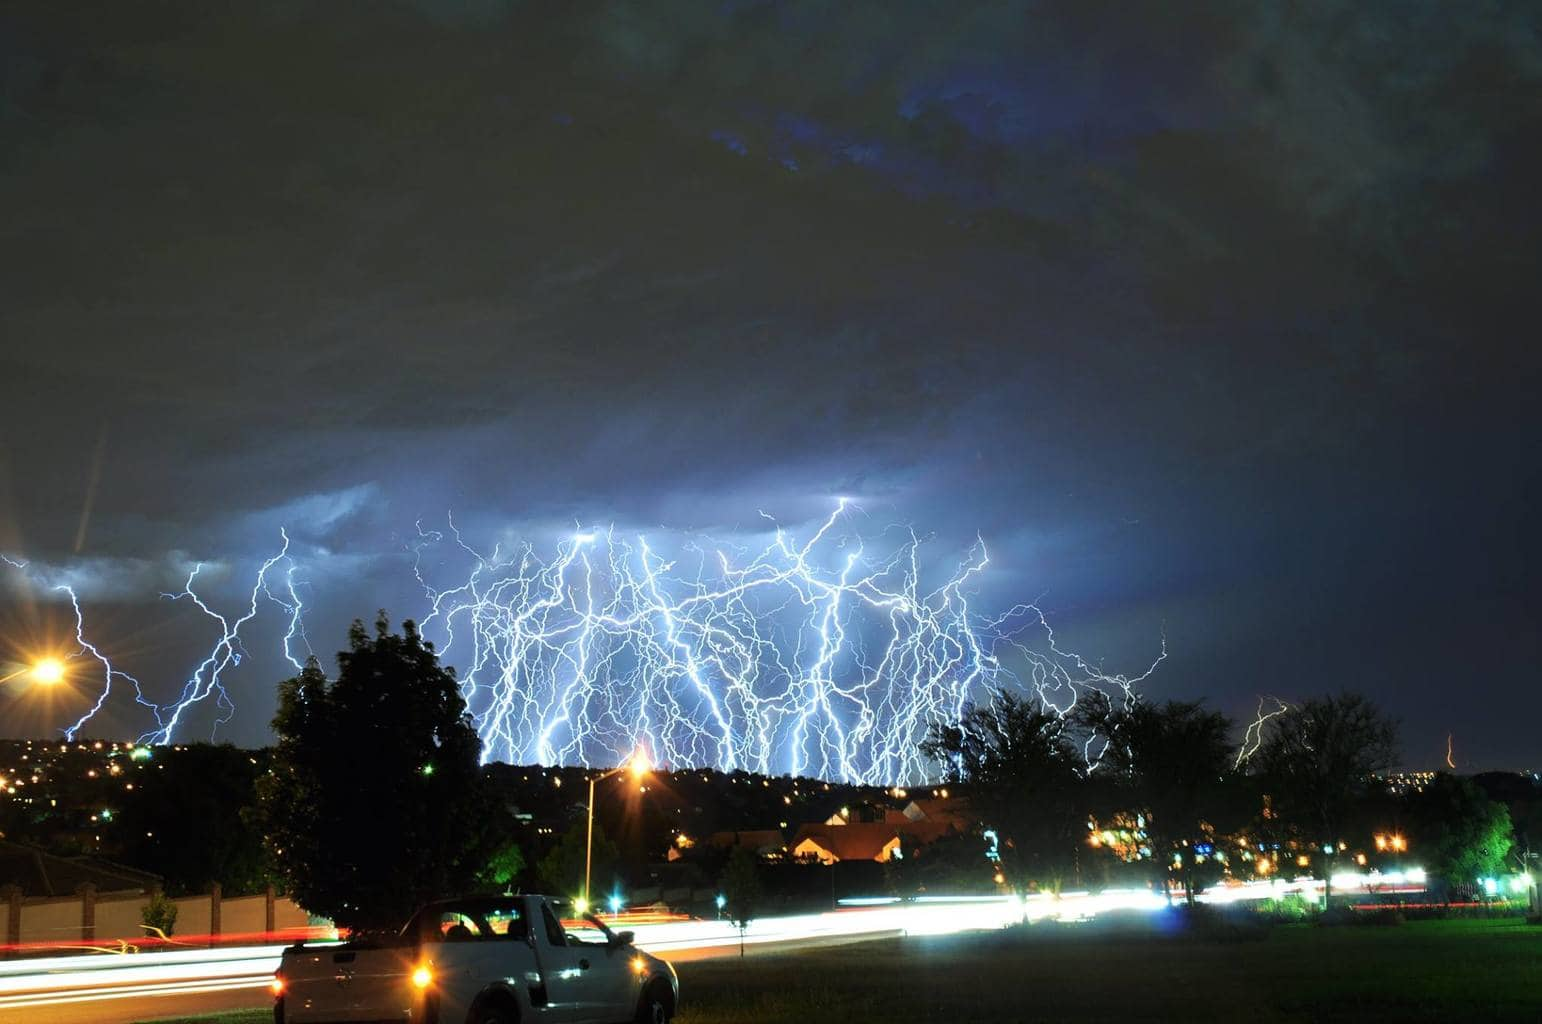 This is one of a series of composites I put together of that epic lightning storm in Pretoria, South Africa on the 4 January 2014. I've posted a few of them so I'm not sure if I've posted this one already. Anyway, that was one hell of an epic light show I'll never forget. Likes and comments much appreciated.